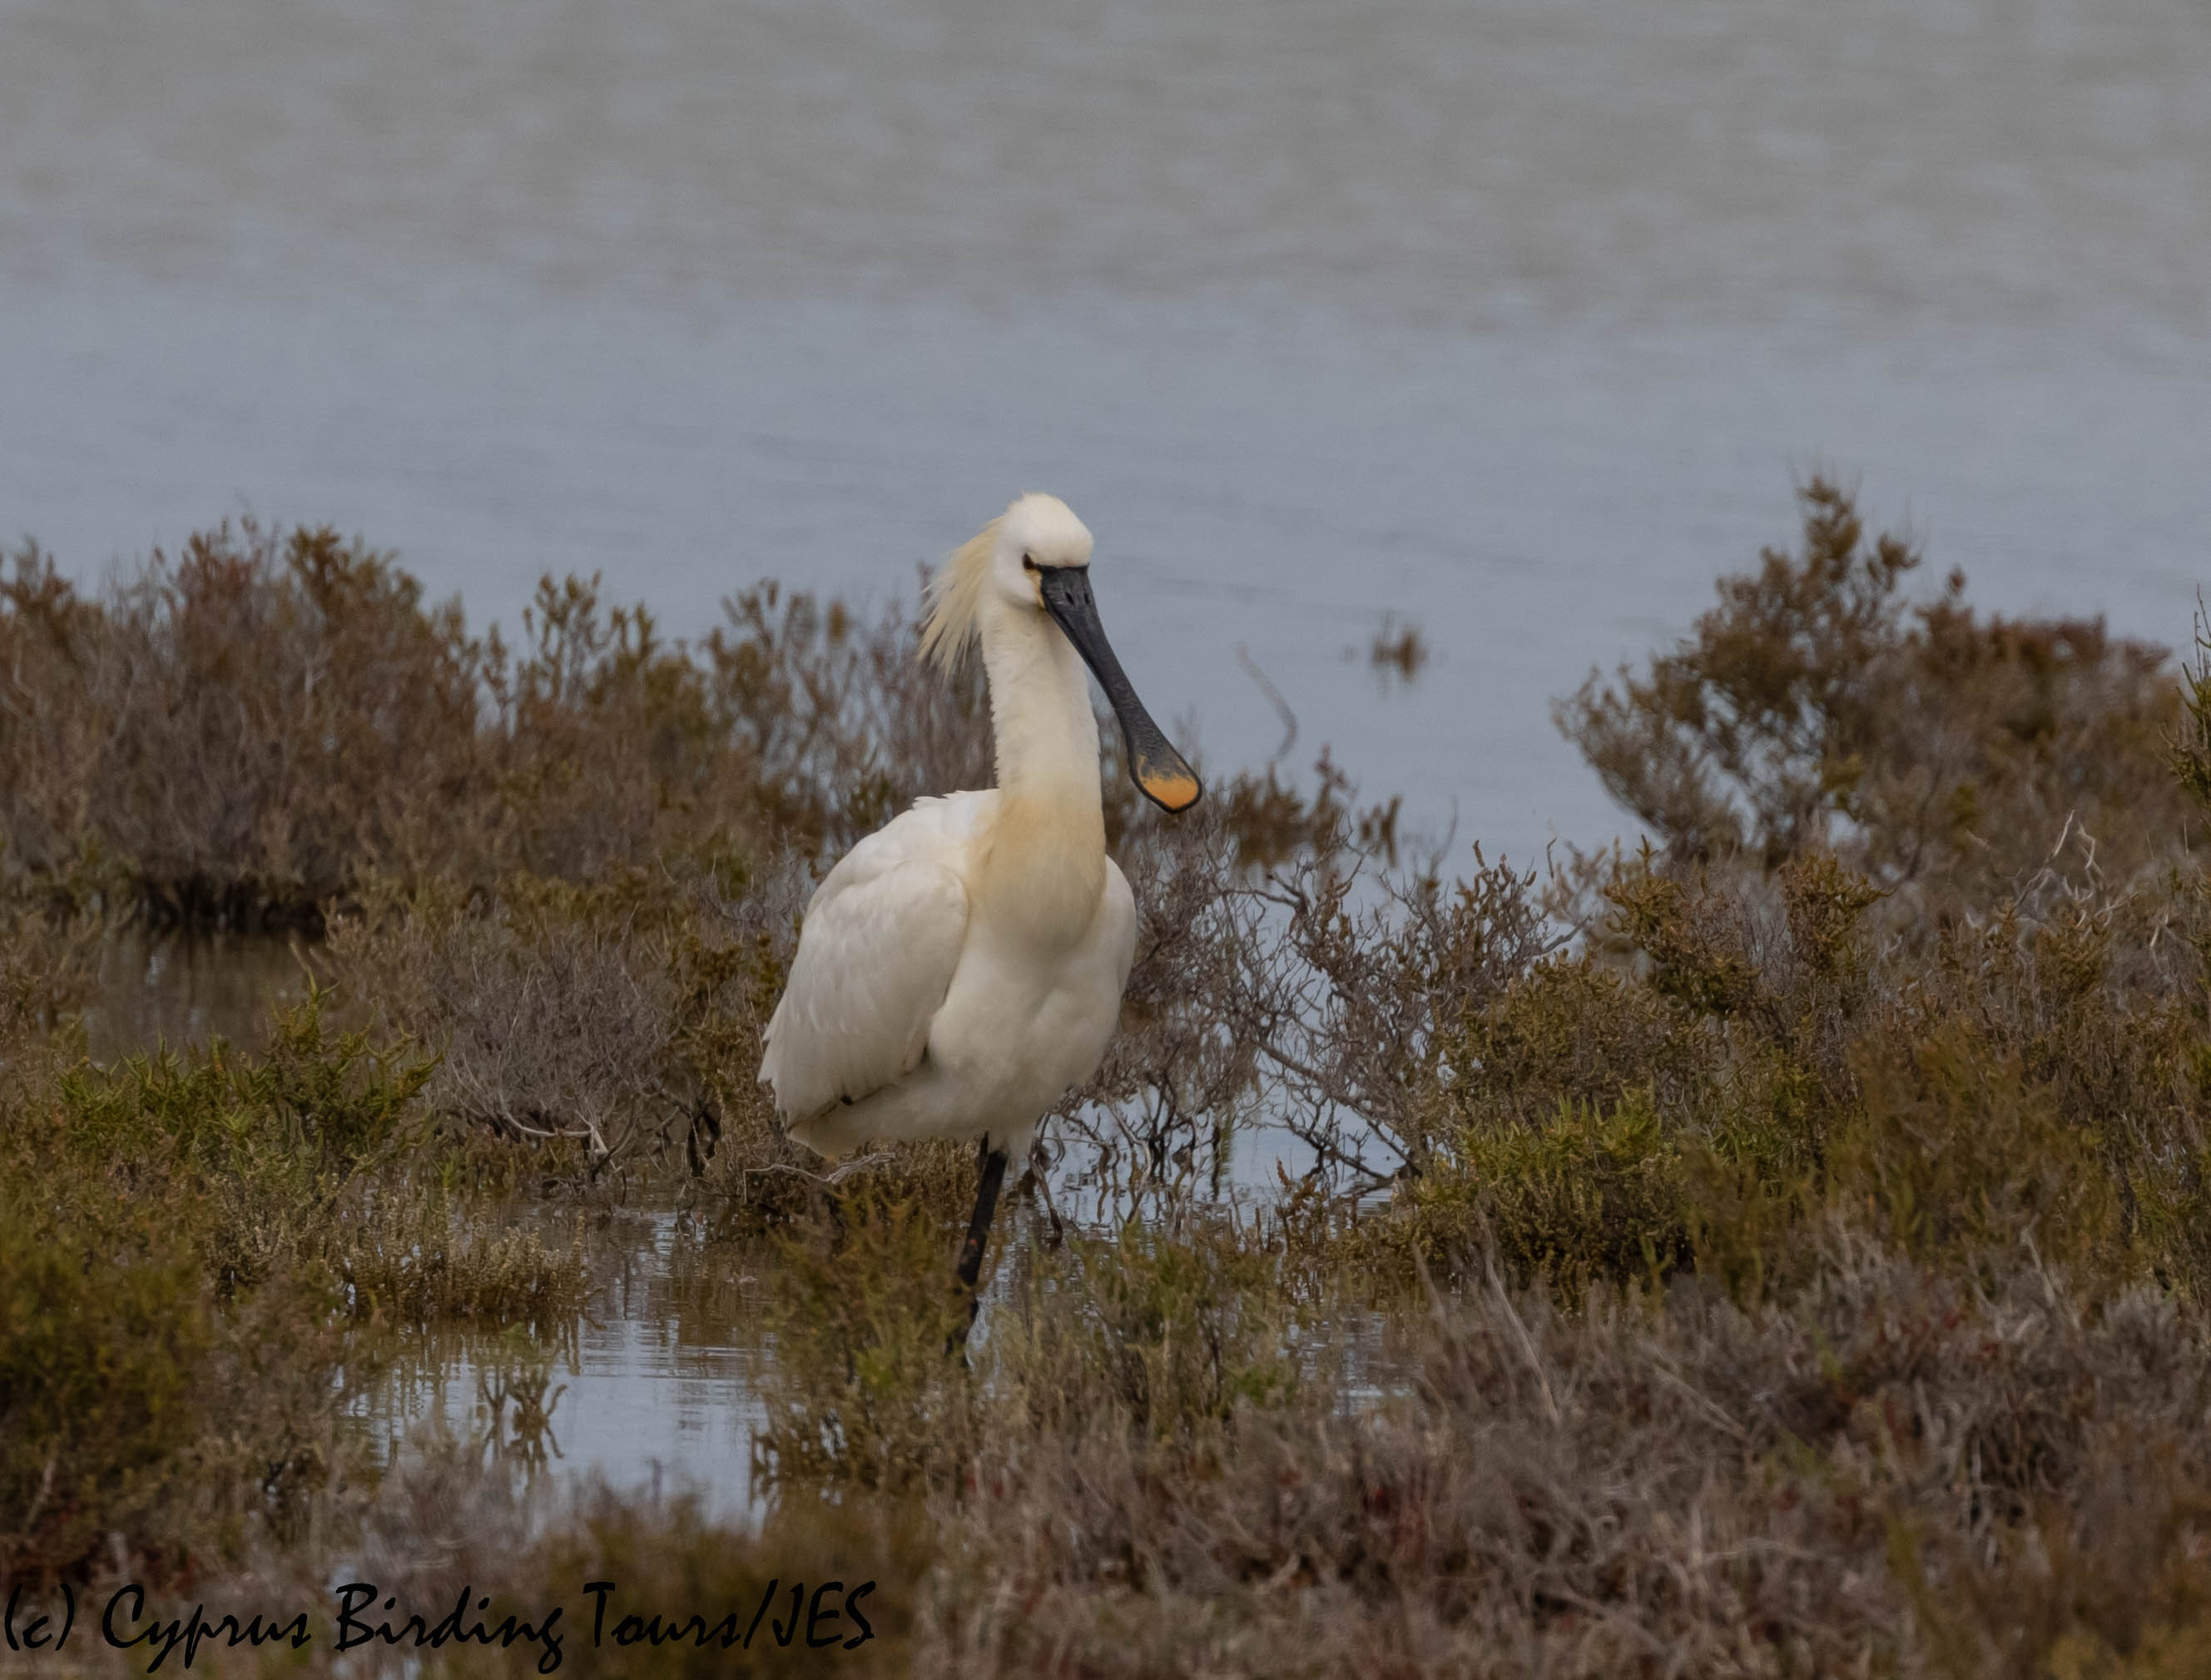 Eurasian Spoonbill, Lady's Mile 16th April 2019. (c) Cyprus Birding Tours